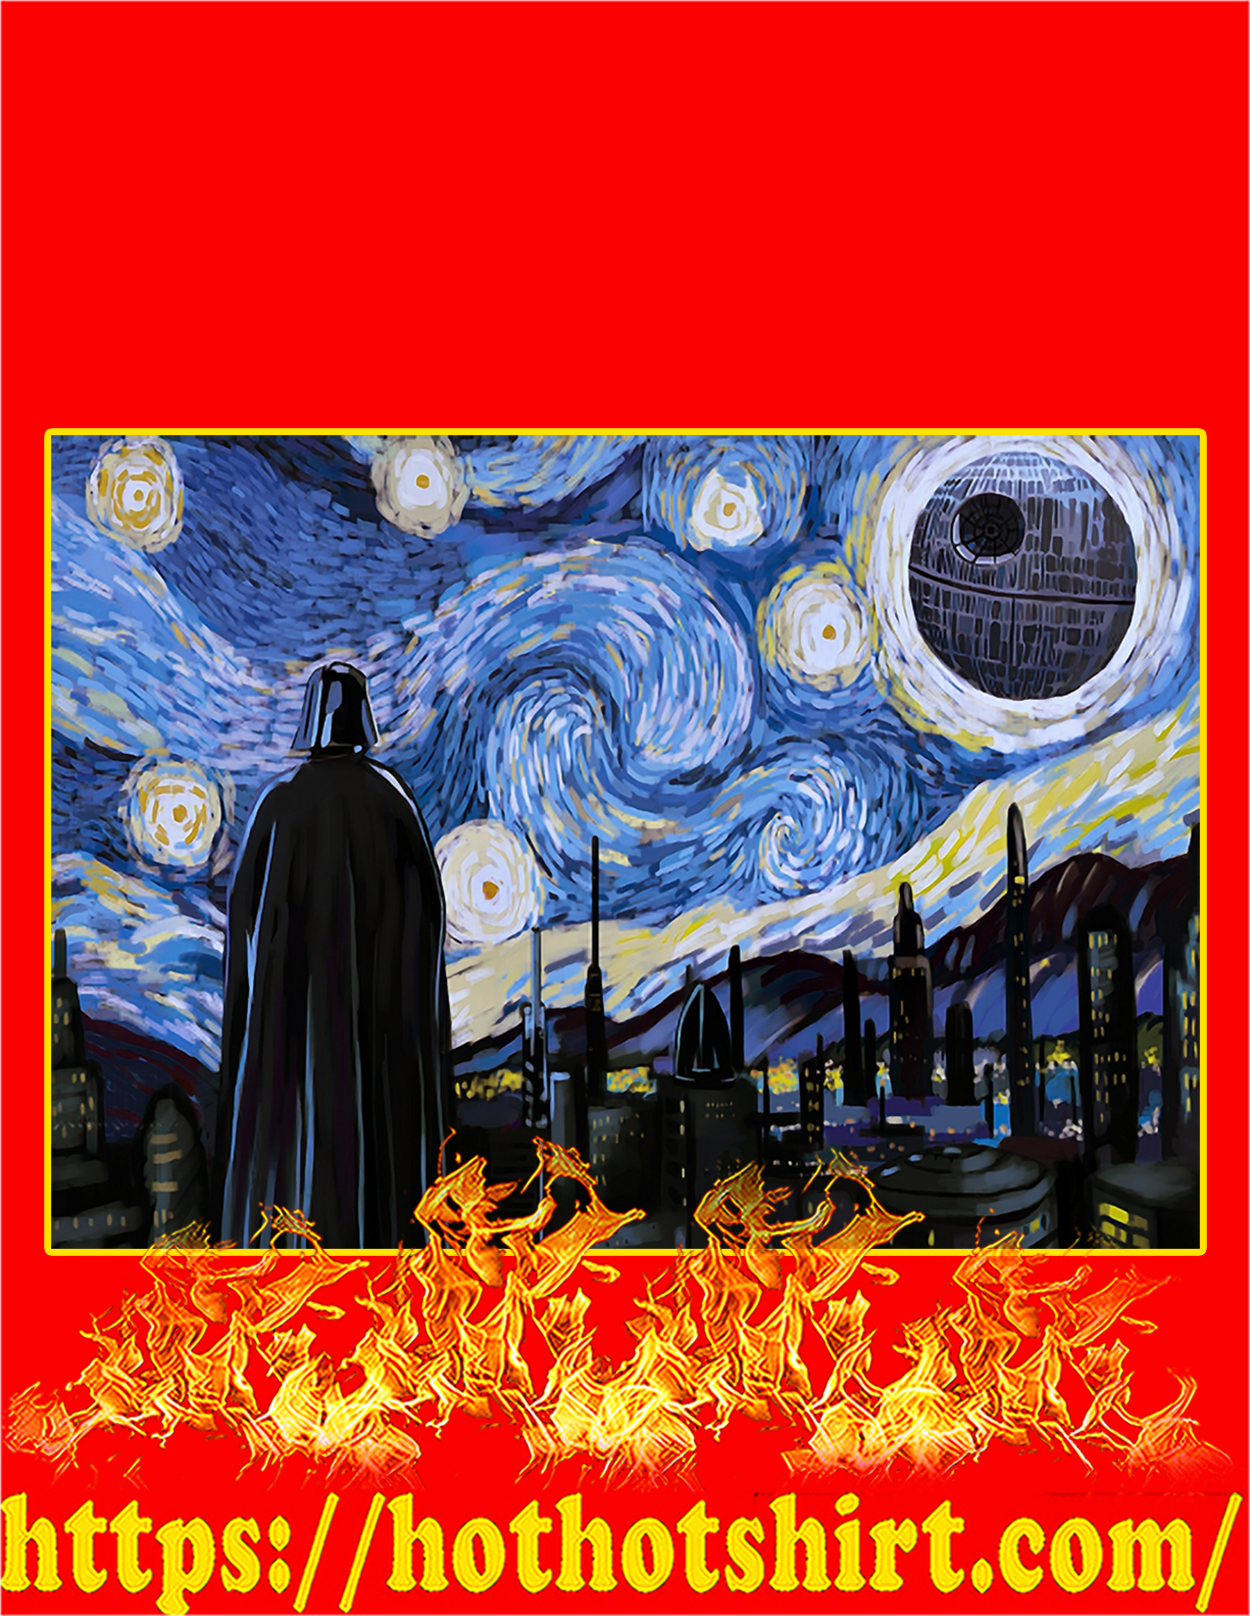 Star wars starry night poster - A3